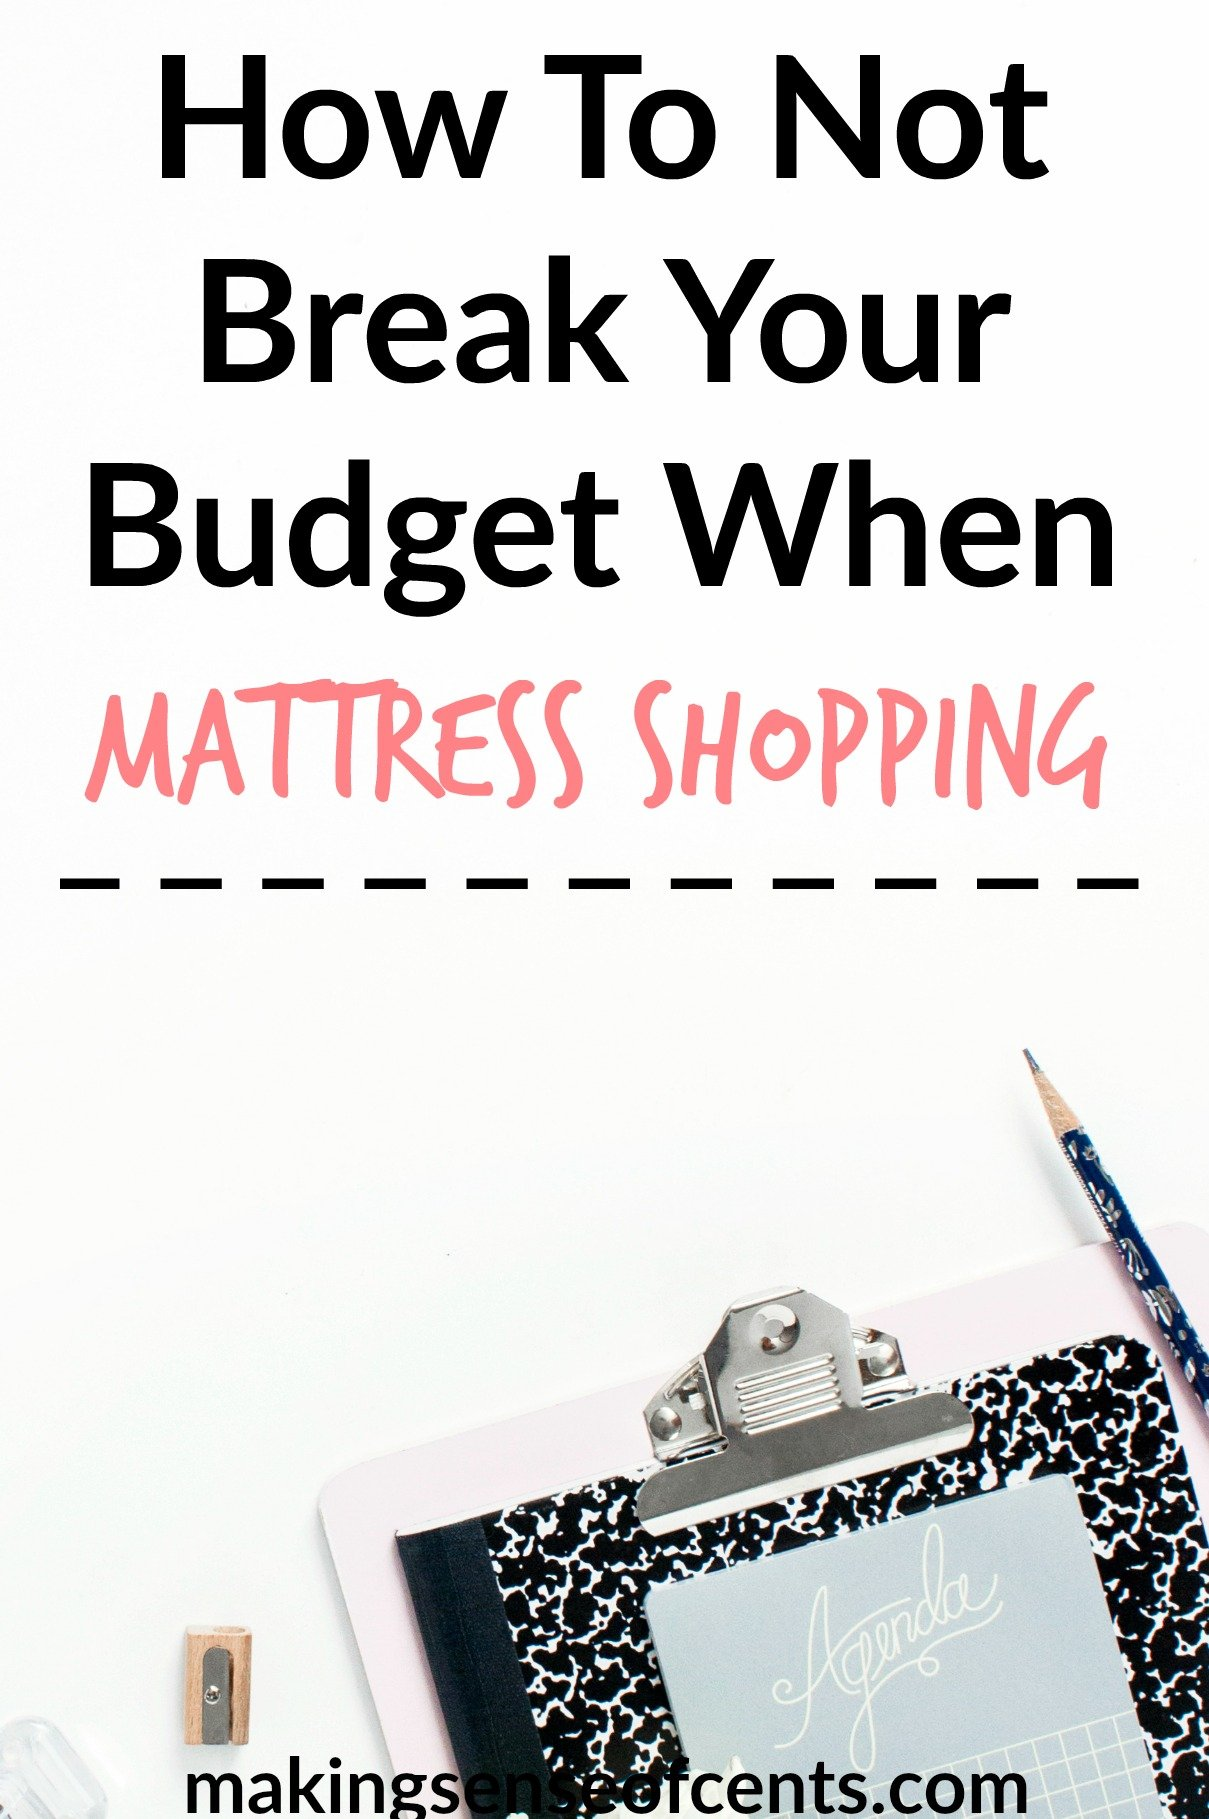 How To Not Break Your Budget When Mattress Shopping